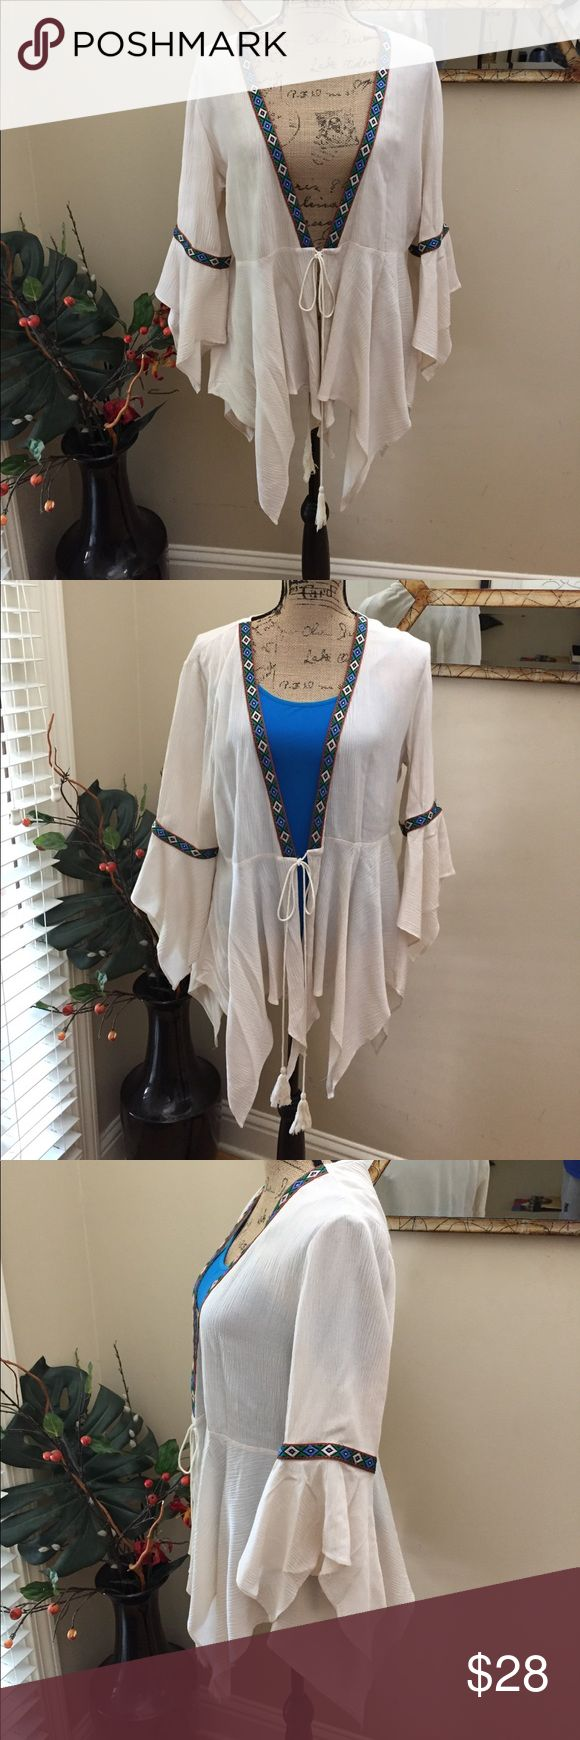 """Entro handkerchief hems BOHO kimono/blouse! Entro handkerchief hems BOHO kimono/blouse! This is a super fun hippie chic top with bell sleeves and multiple hem lengths. It has s tasseled tie in front and will require a bra or cami underneath. (Pictured with a blue cami for example). I wore this once and have the most recent dry cleaning tag on the Entro tag. Aztec turquoise green rust detail. Stunning. Preloved in excellent condition. Pit to pit measurement (tied) is 19"""". Length is 26""""…"""